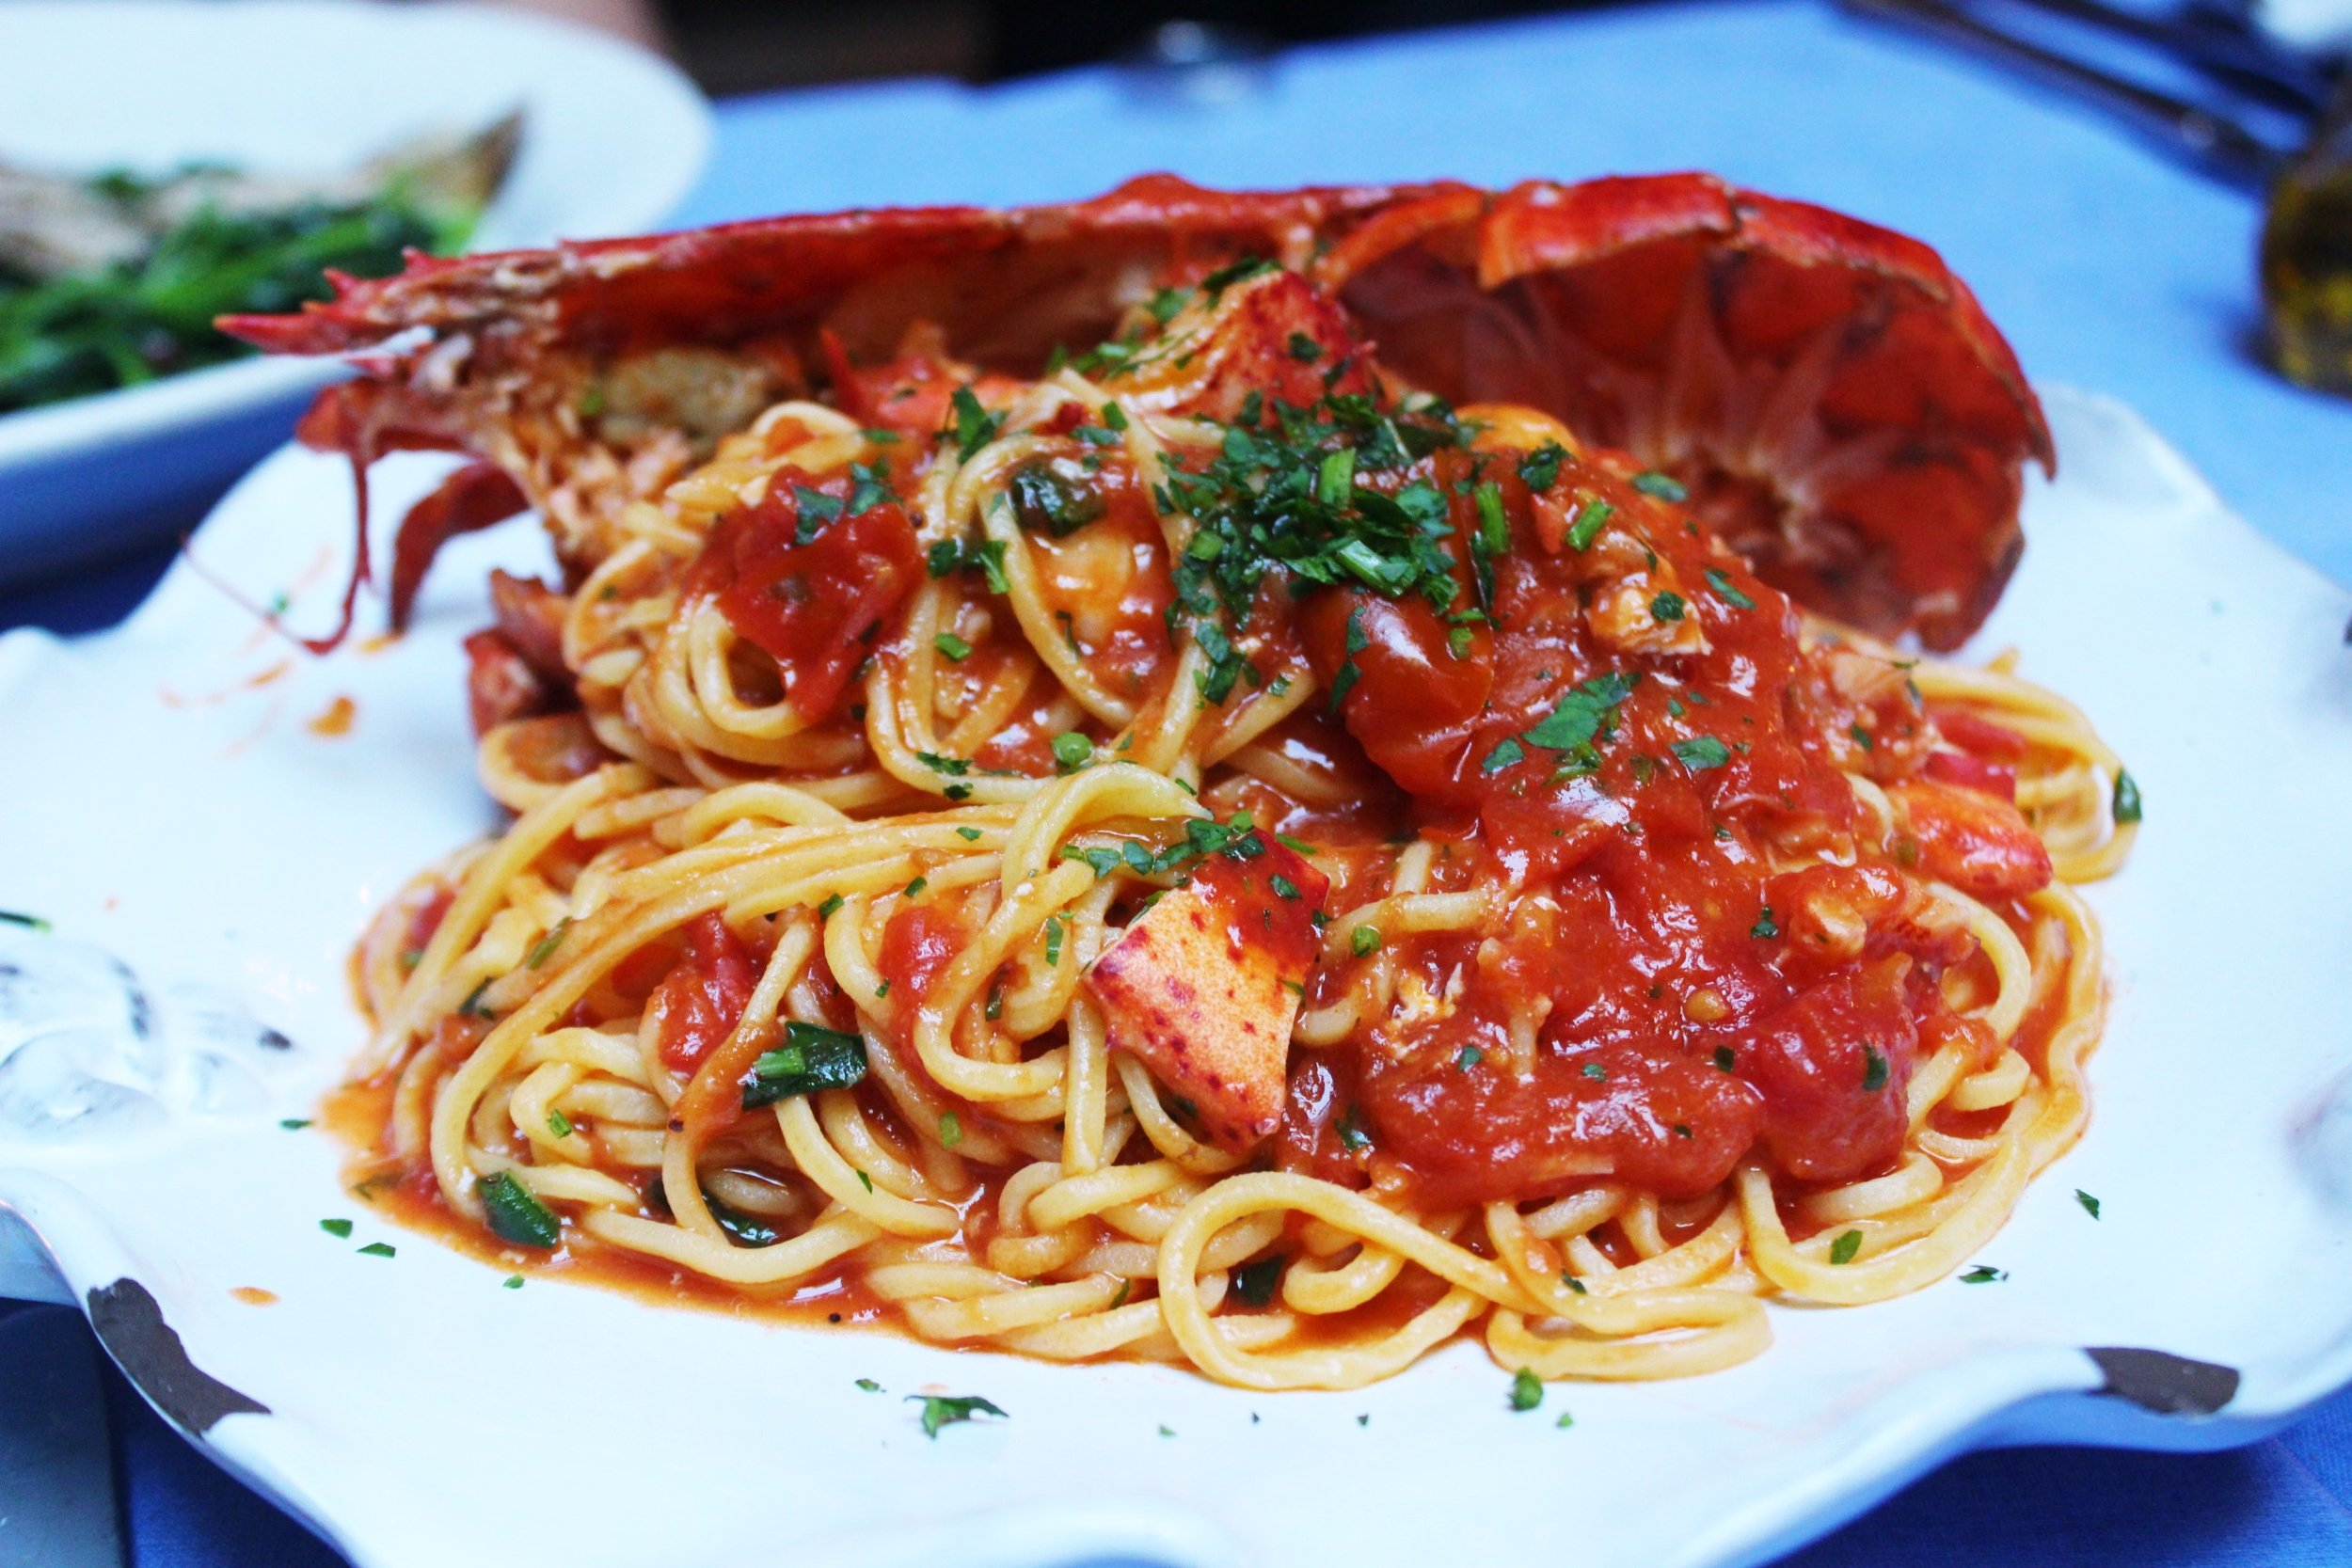 Spaghetti All'astice Half Maine Lobster With Homemade Spaghetti In A Sauce Of Lobster, Cherry Tomato And Brandy